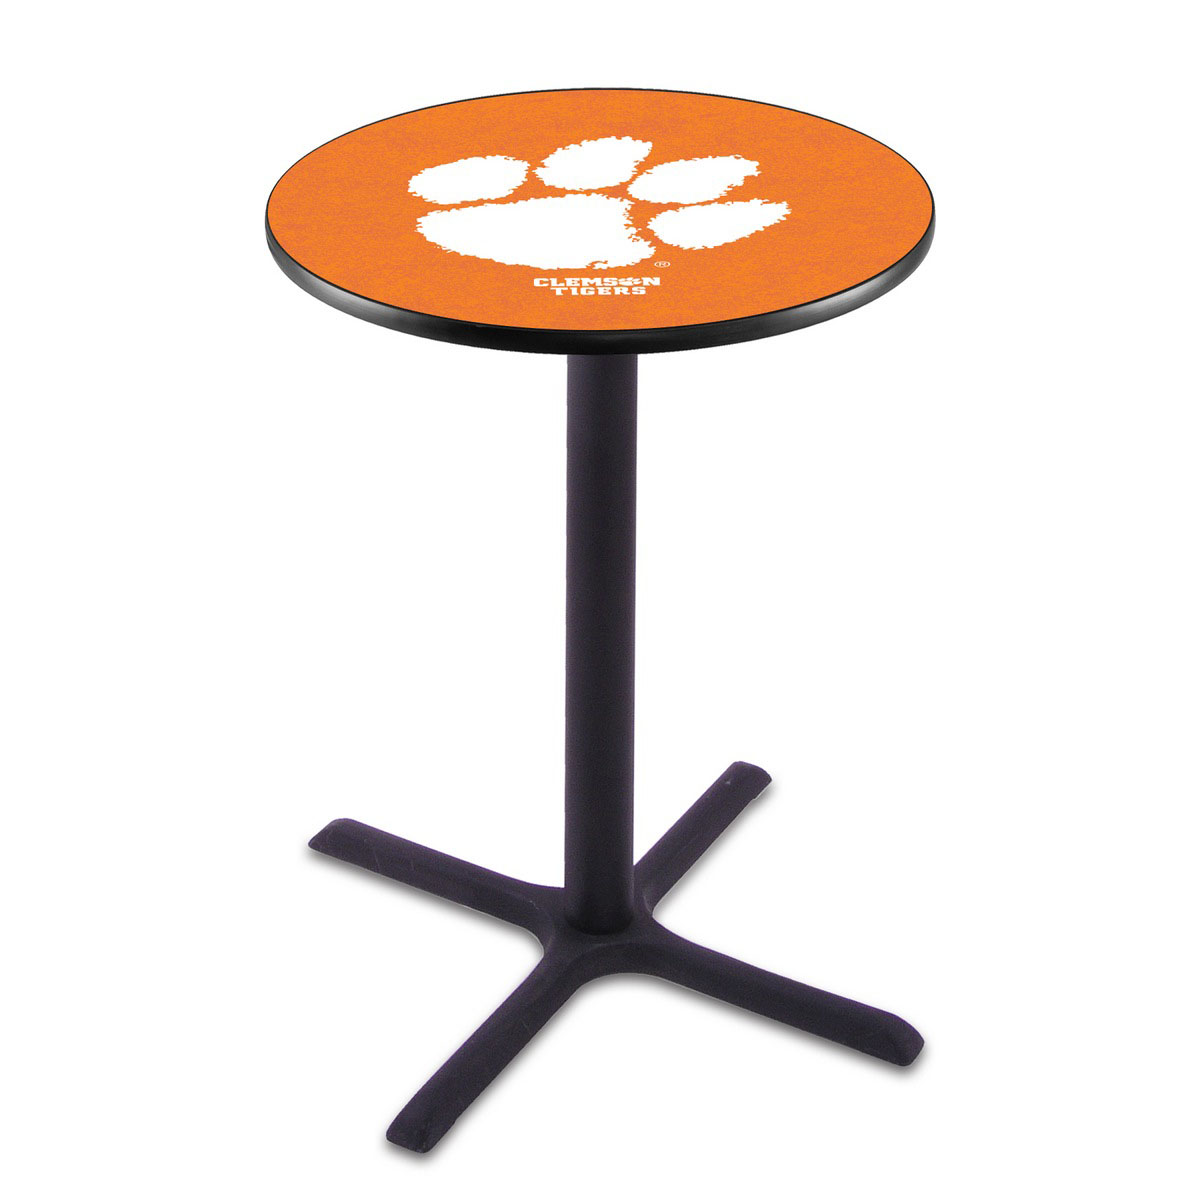 Exquisite Clemson Wrinkle Pub Table Product Photo